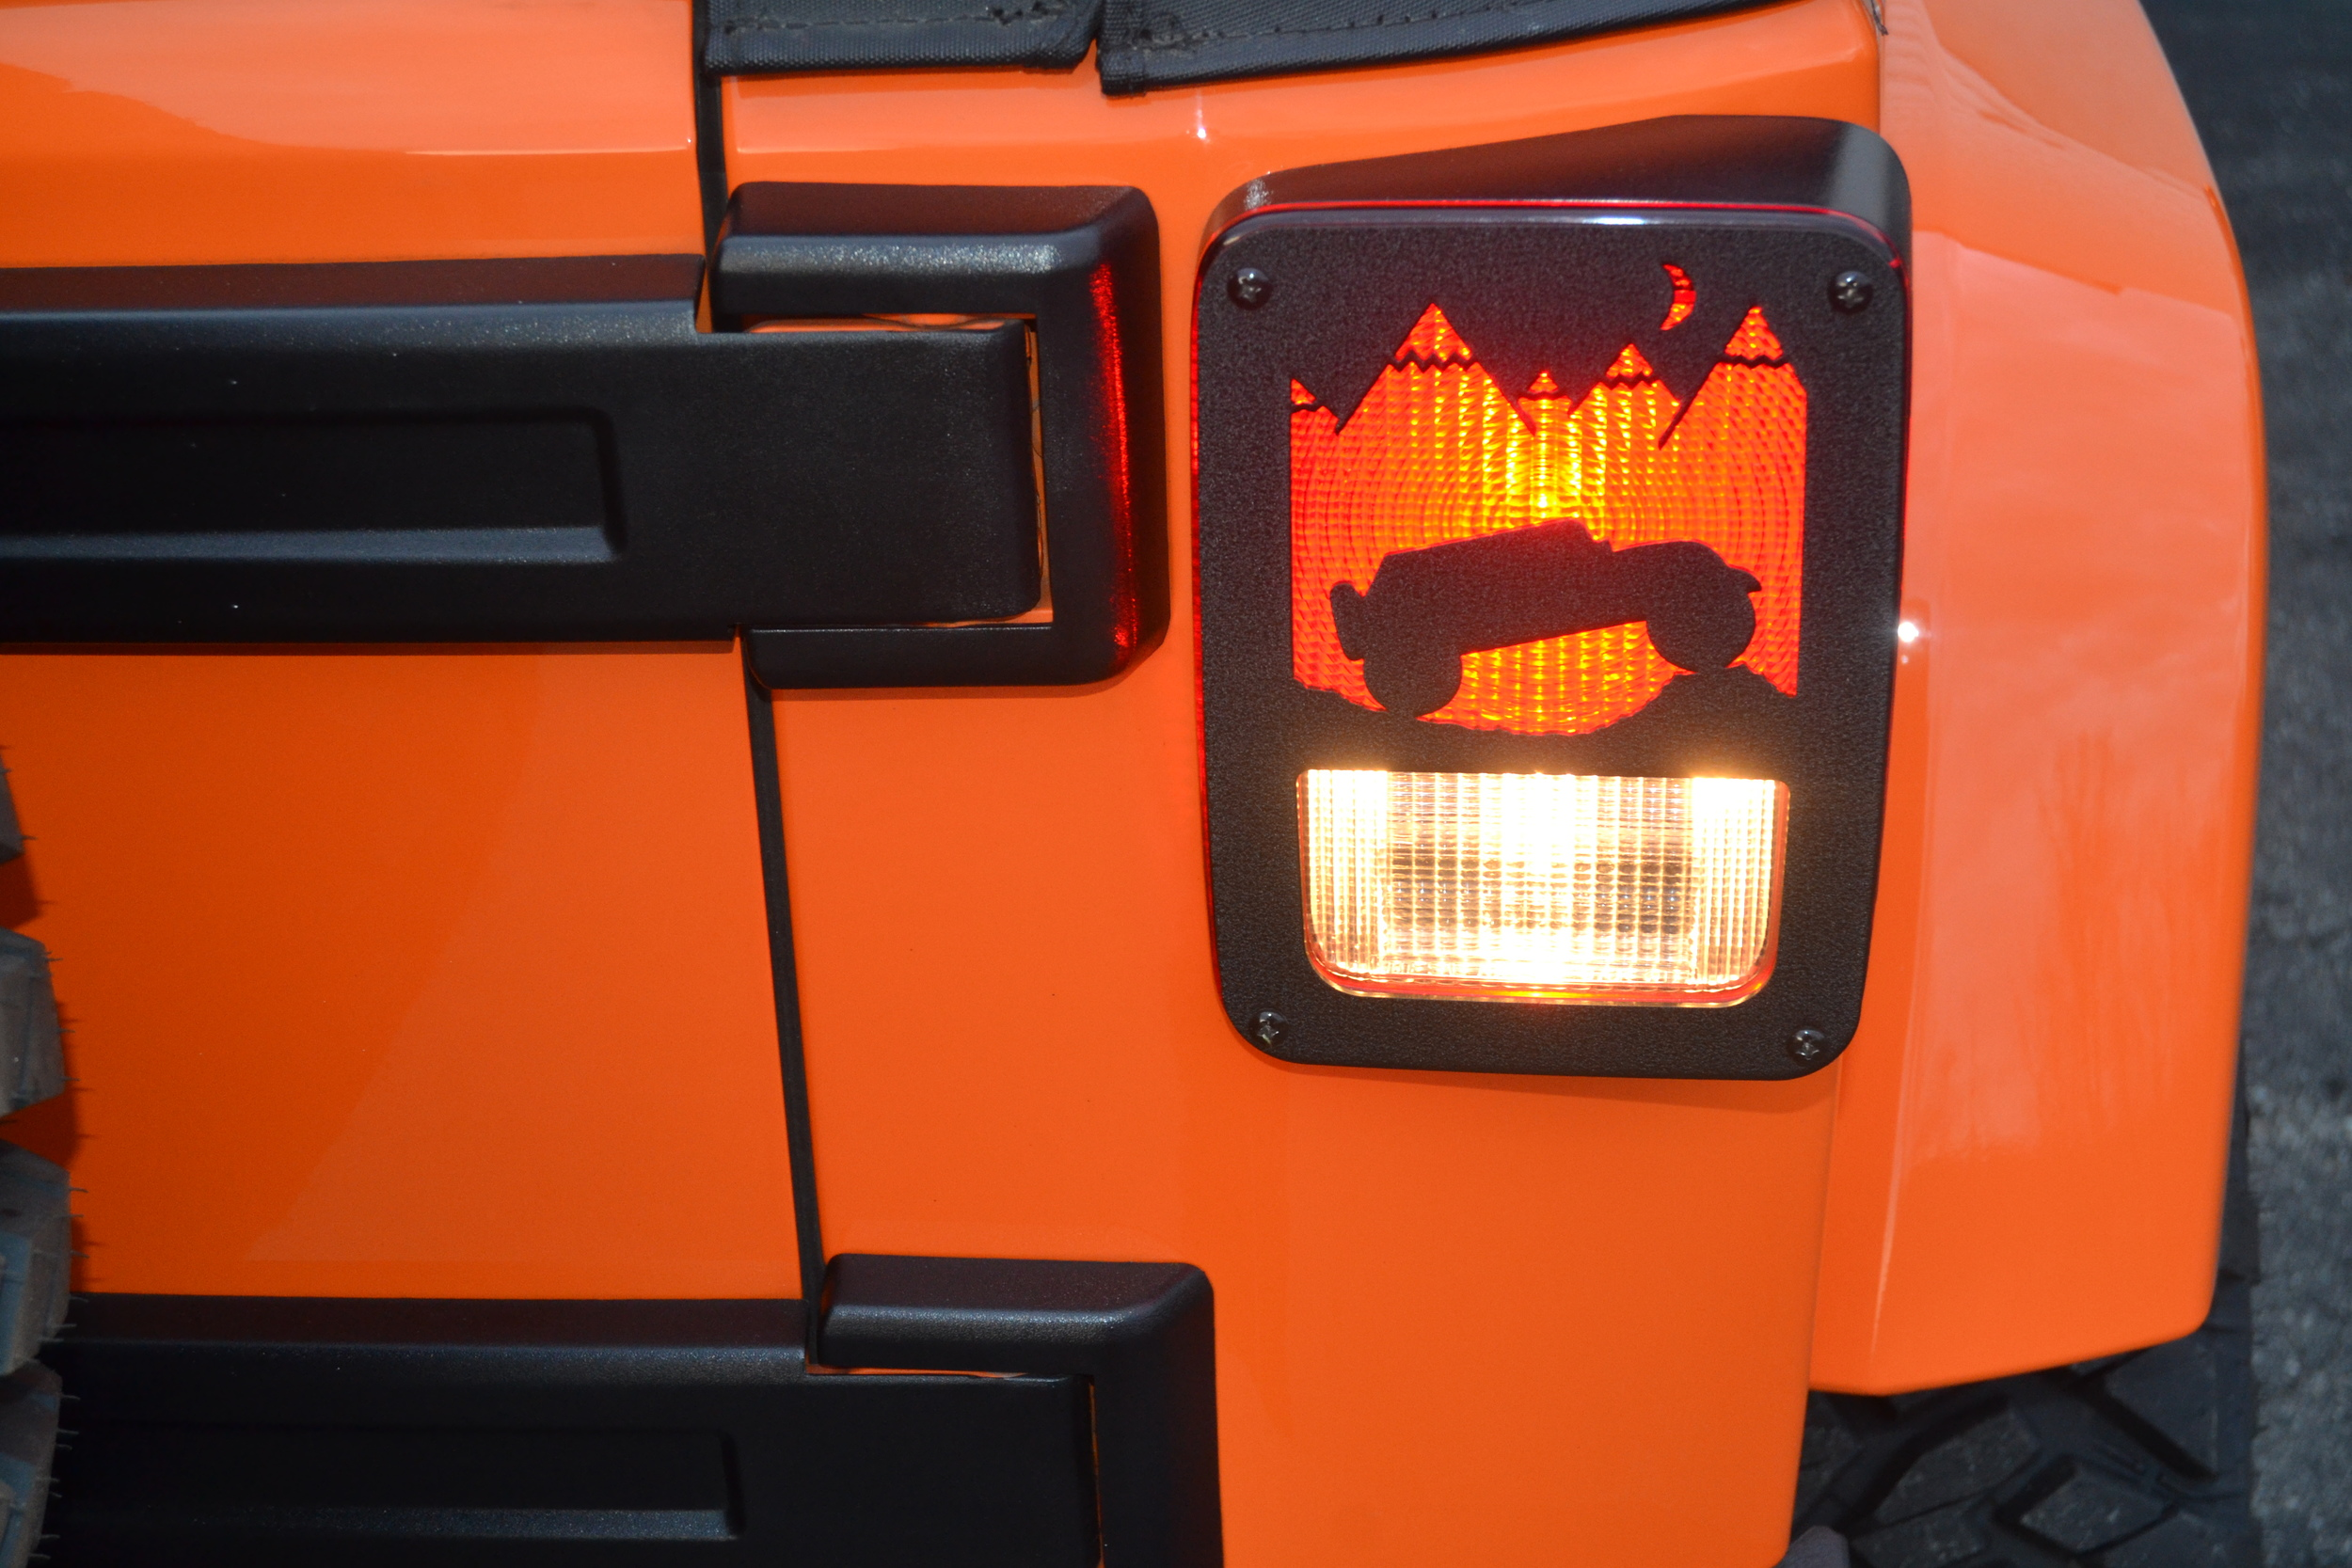 BLACK JK (2007-PRESENT) JEEP TERRAIN DESIGN SHOWN ABOVE. NEW DESIGN. ALL OUR TAILLIGHT GUARDS ARE REVERSABLE. JEEP IMAGE CAN FACE OUTWARDS OR TOWARDS EACH OTHER.